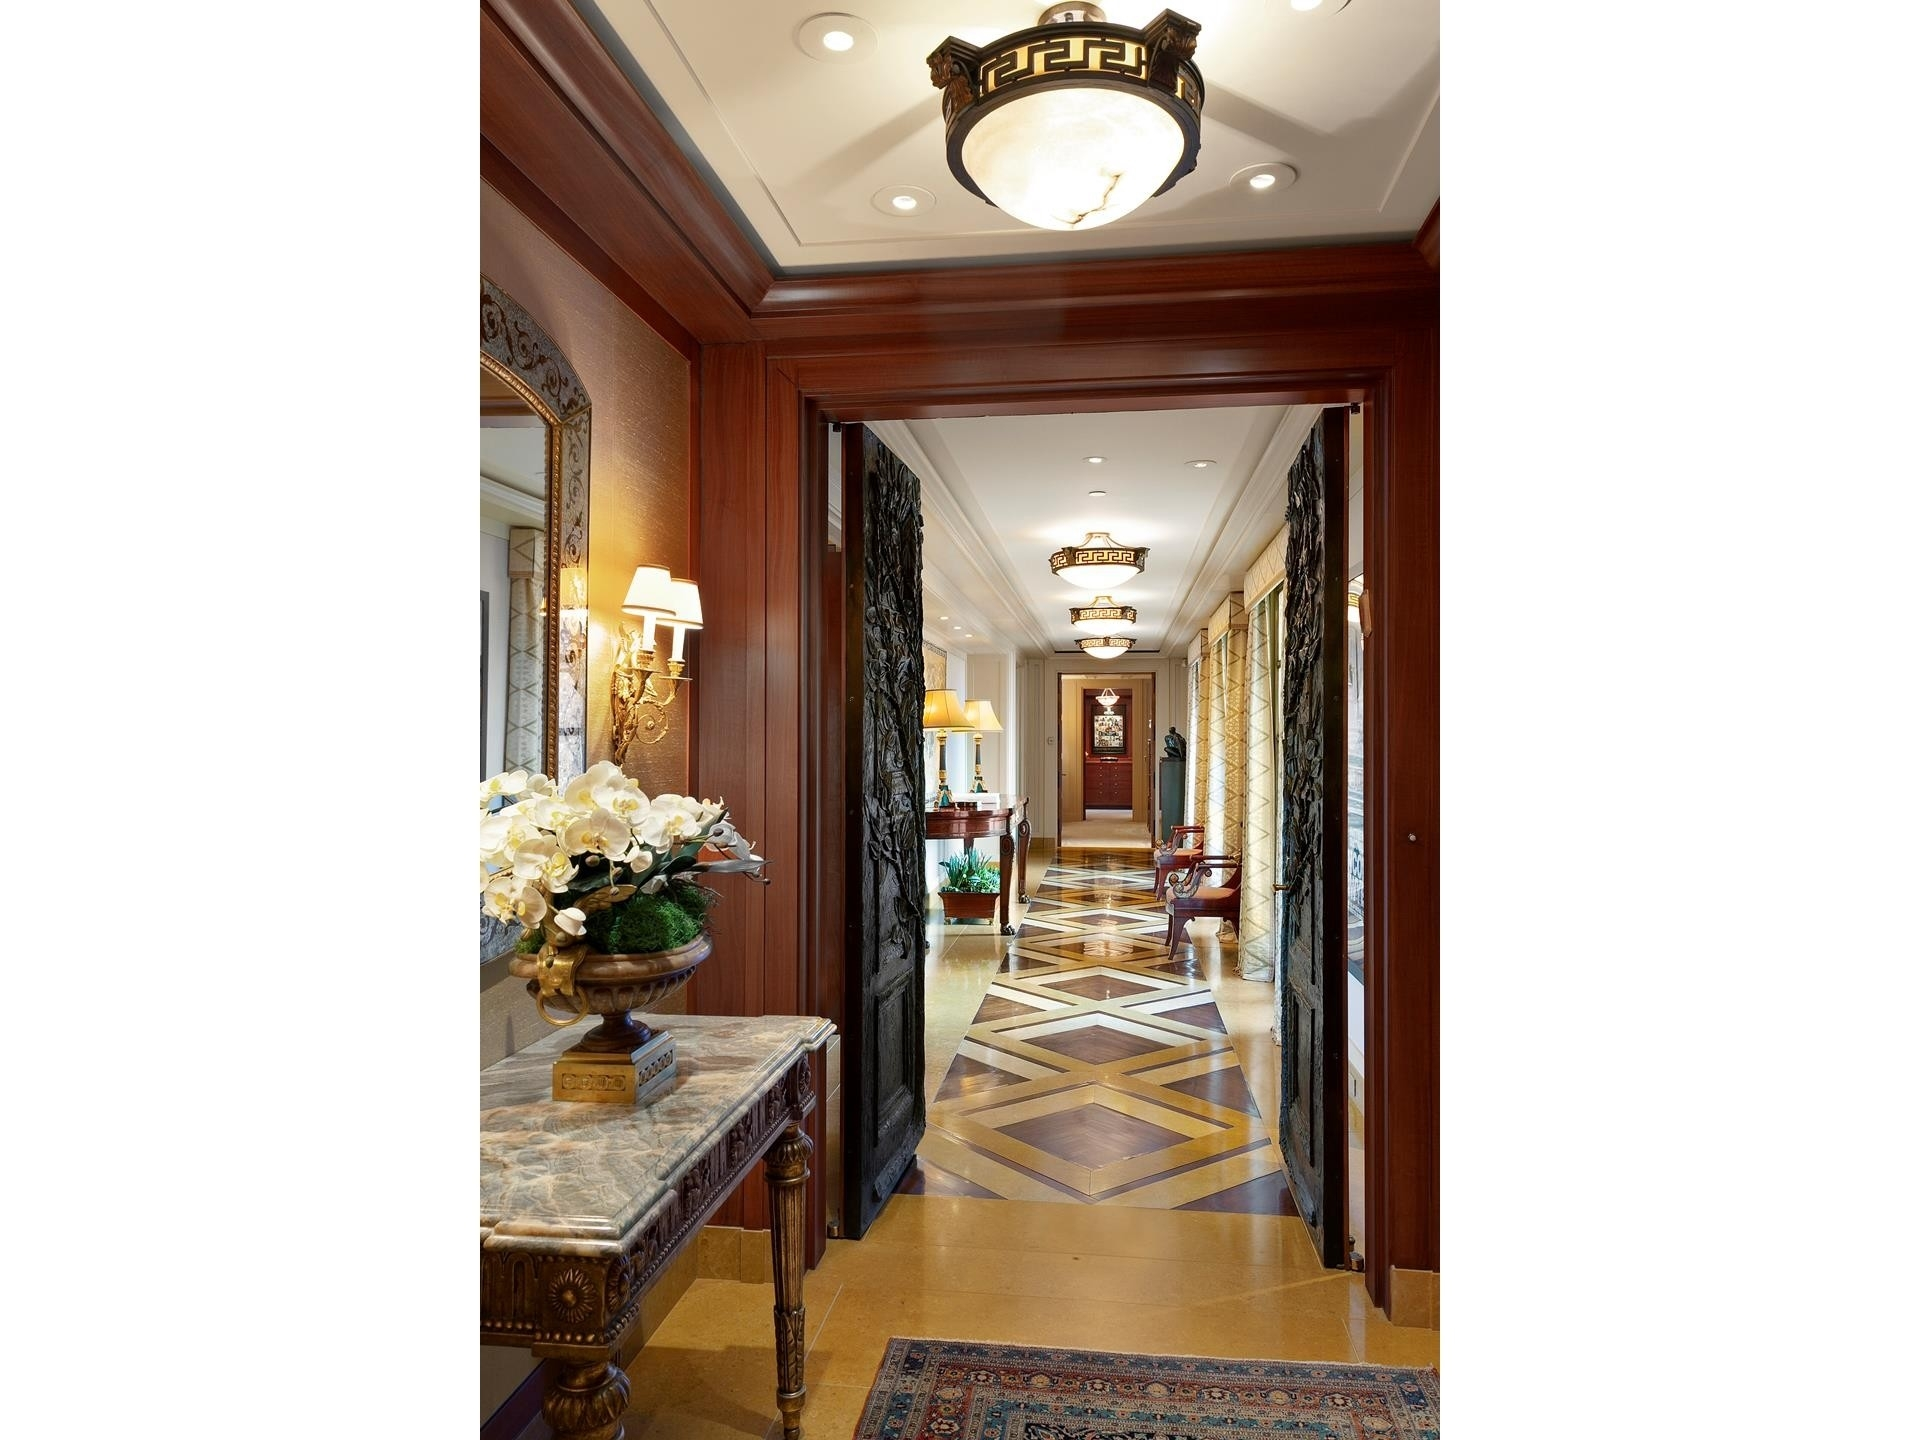 Condominium for Sale at RITZ CARLTON, 50 Central Park South, 27 Central Park South, New York, NY 10019